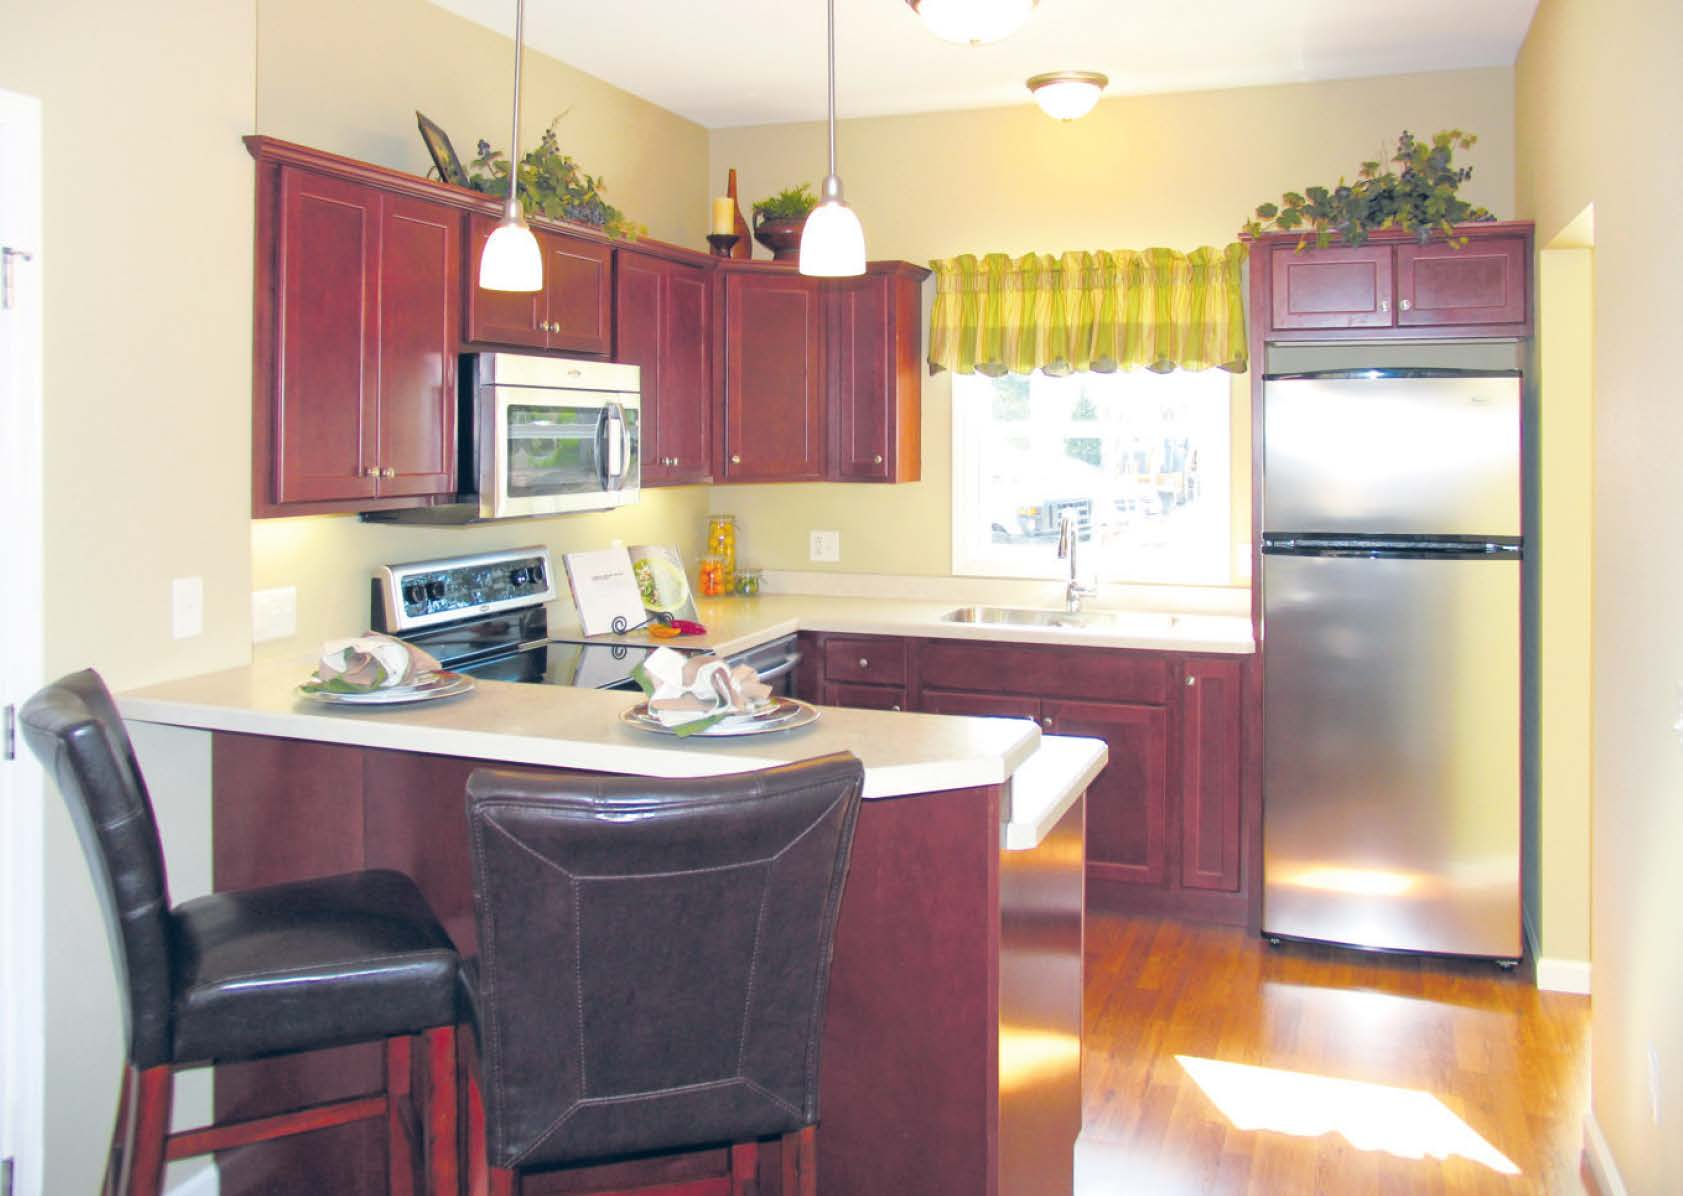 Kitchen cabinets sunset park brooklyn - Brooklynn Park Start Anew In Style The Blade Best Of Kitchen Cabinets Brooklyn